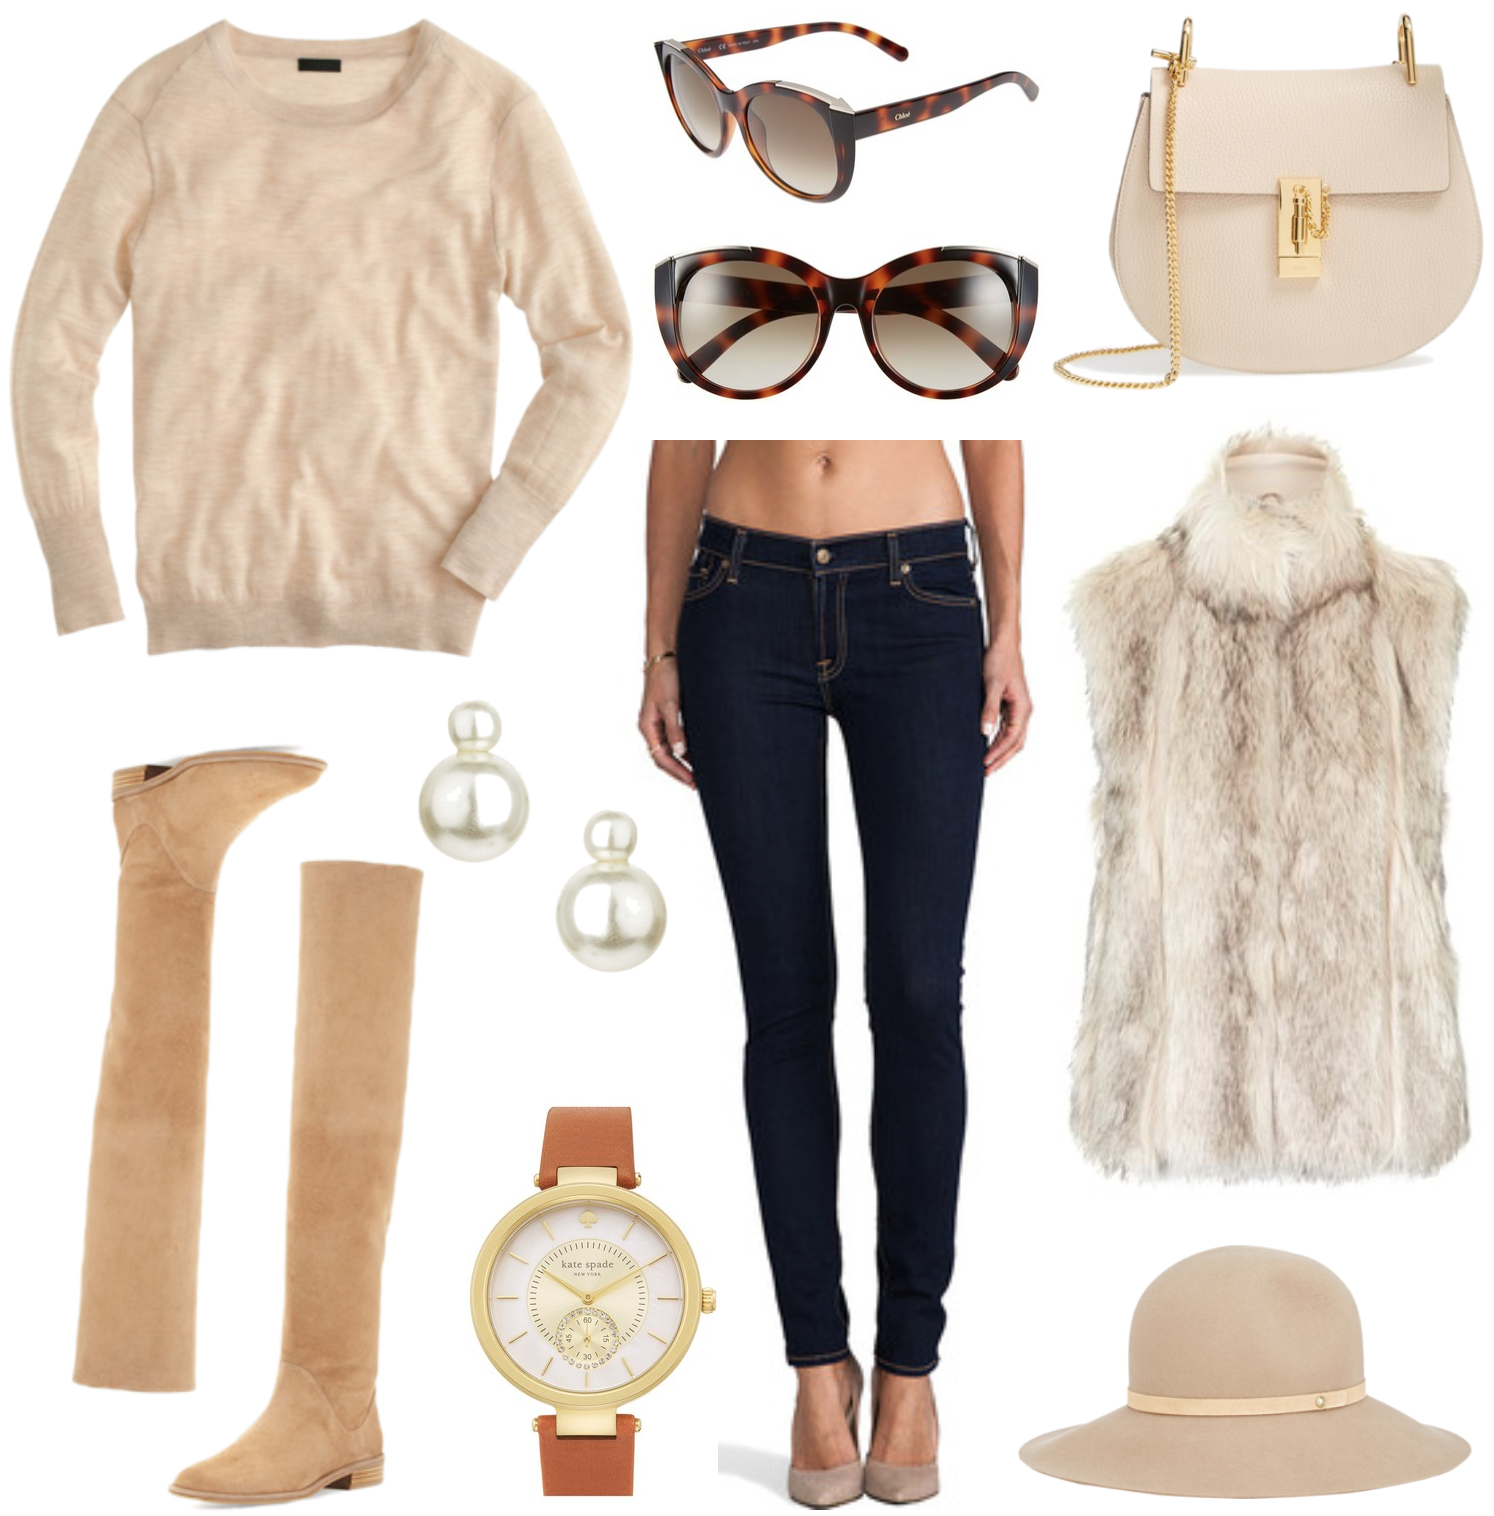 Styling Neutrals : Mix and Match